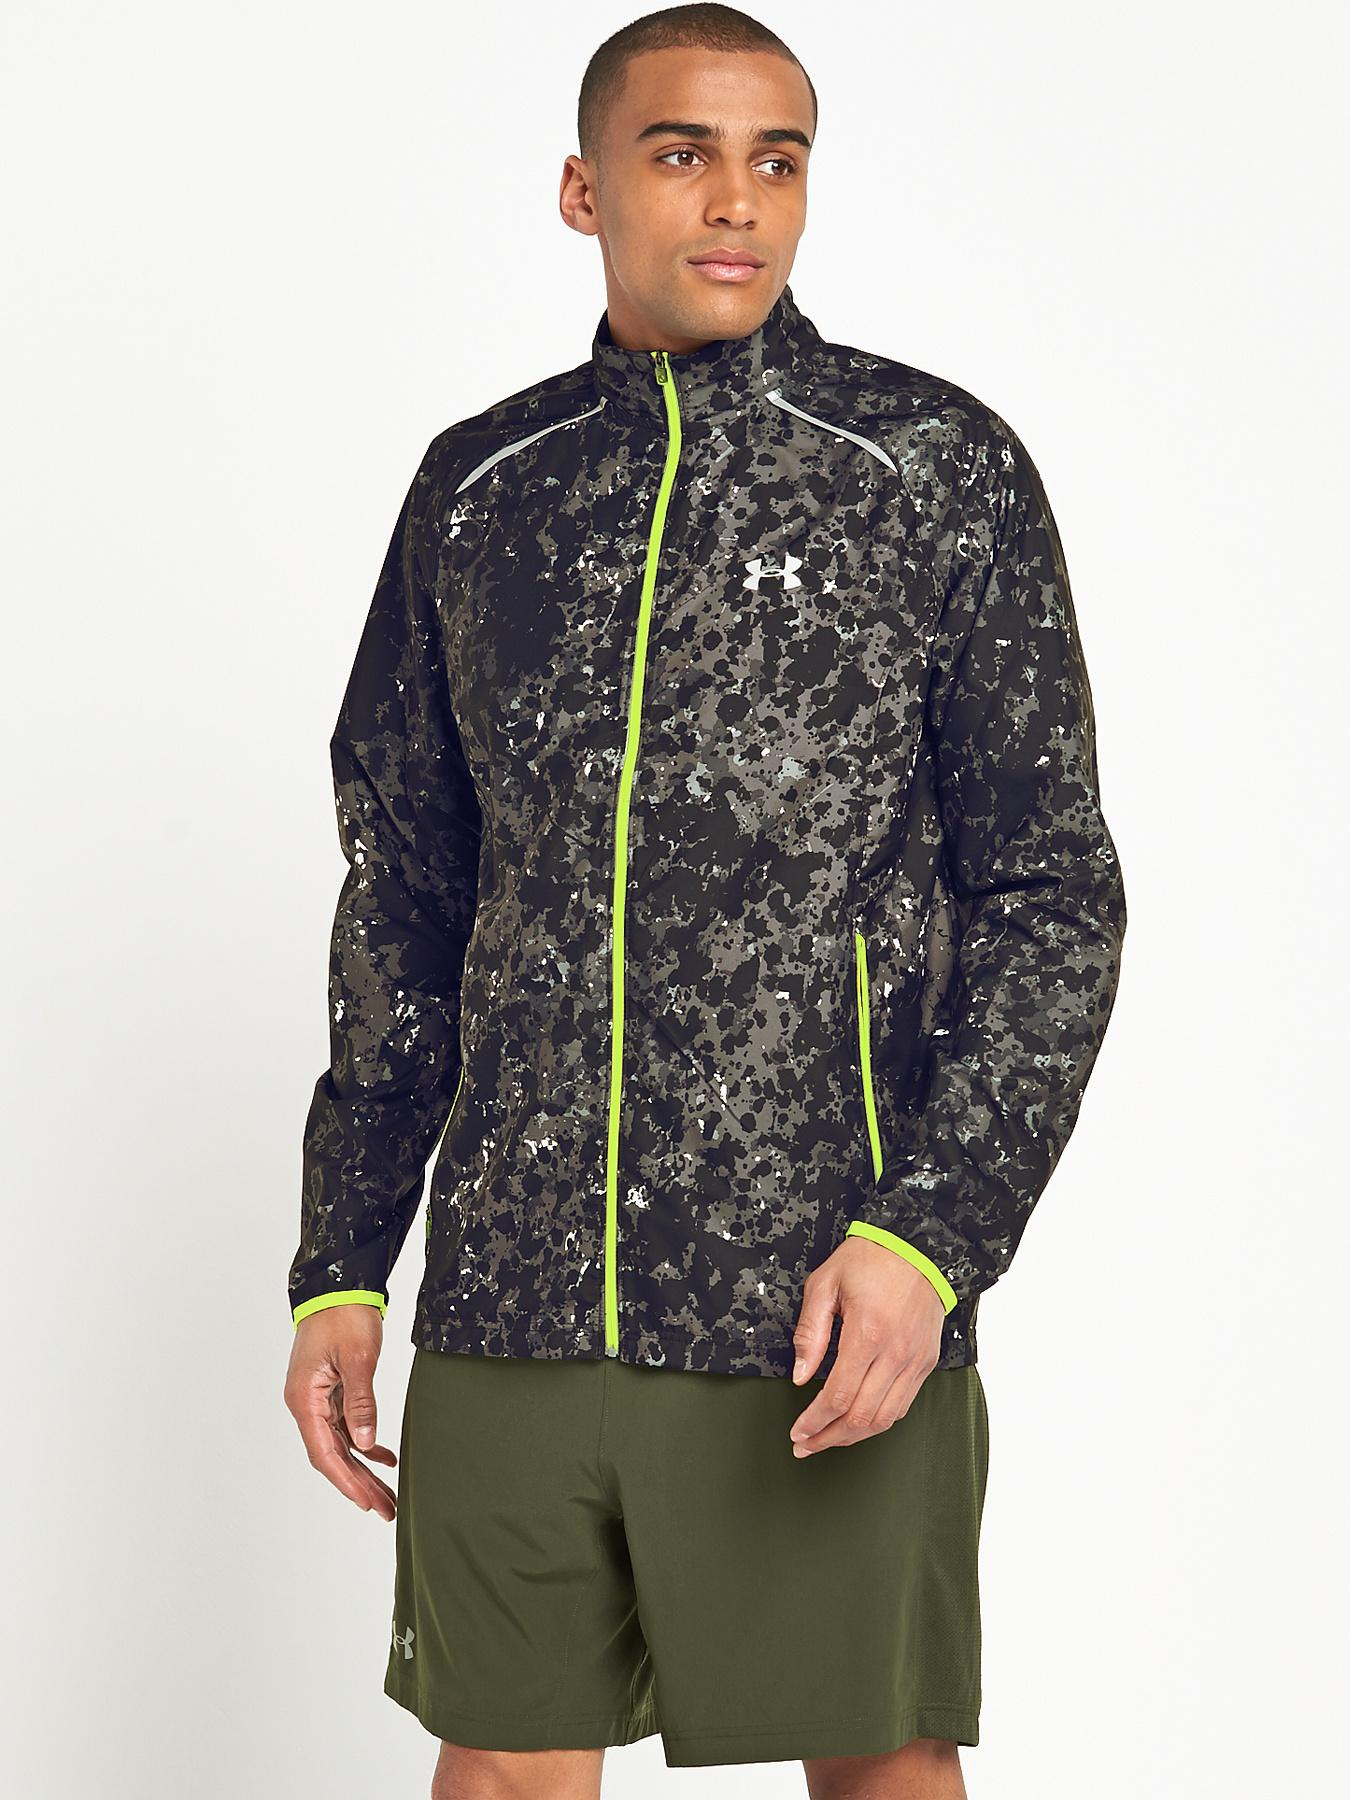 UNDER ARMOUR Mens Storm Launch Run Jacket - Black, Black